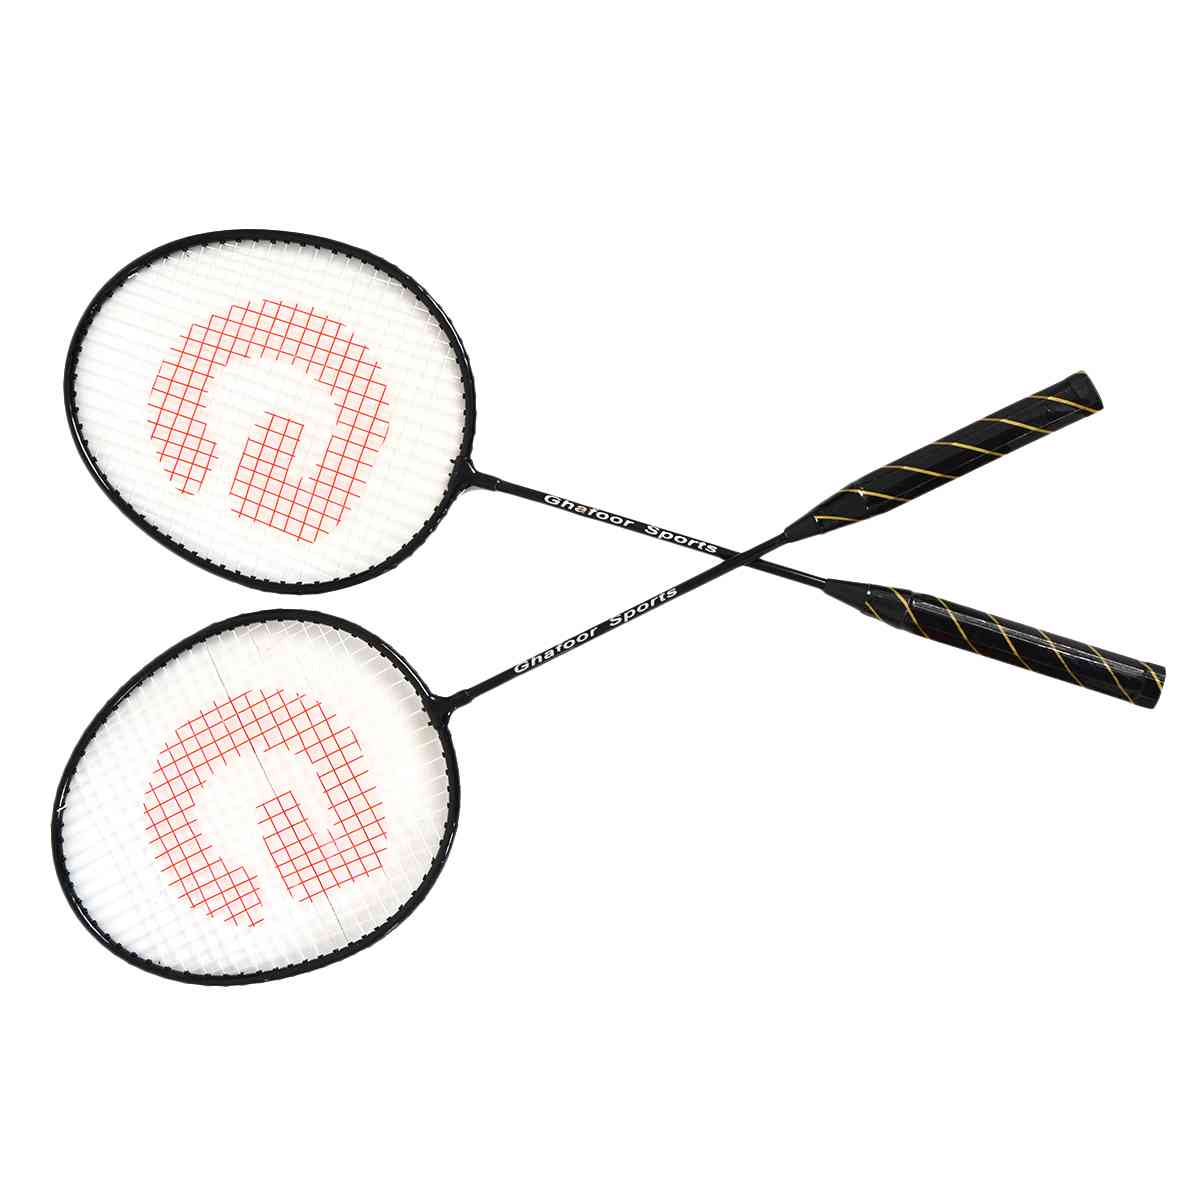 2 Pcs Good Quality Badminton Rackets with Bag (With Joint, 25 Inch Length)